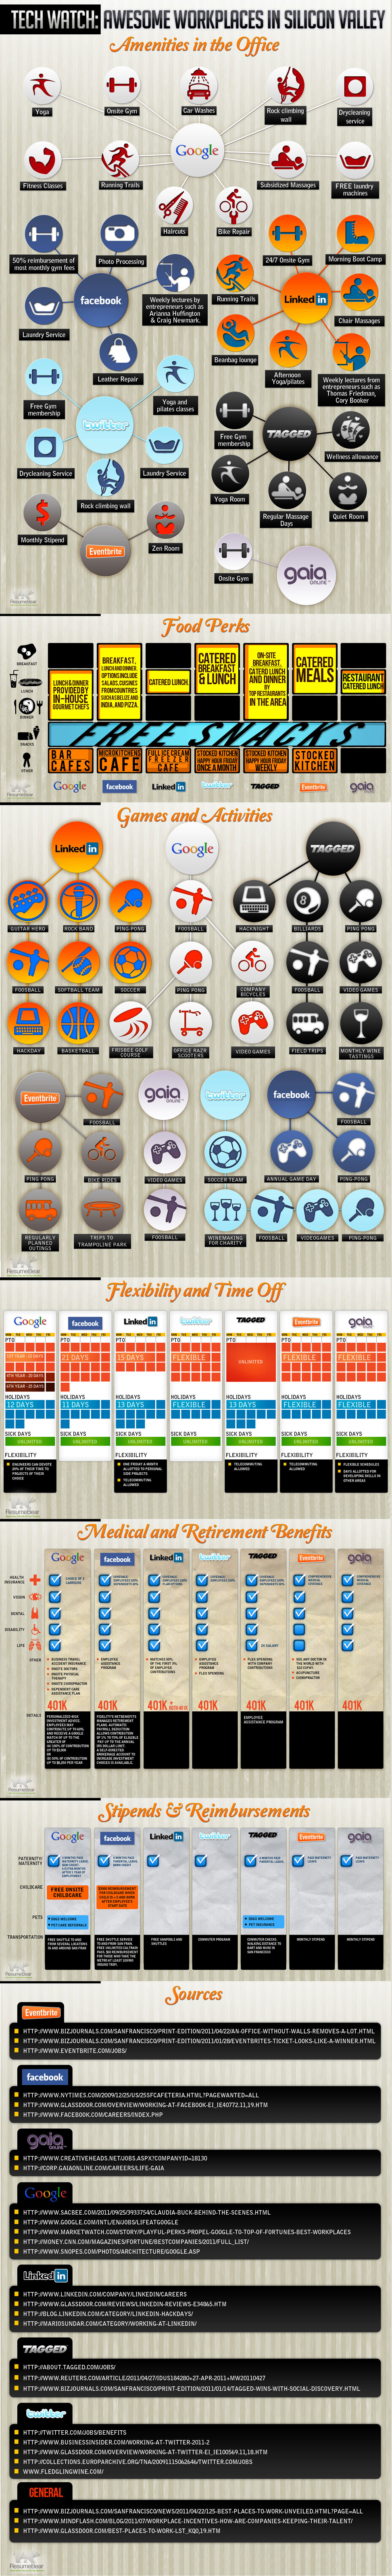 HAHA.. Yeah not my company, we still follow the industrial revolution model.  We get 2 sick days/year cause that'g generous.     Tech Company Perks Infographic